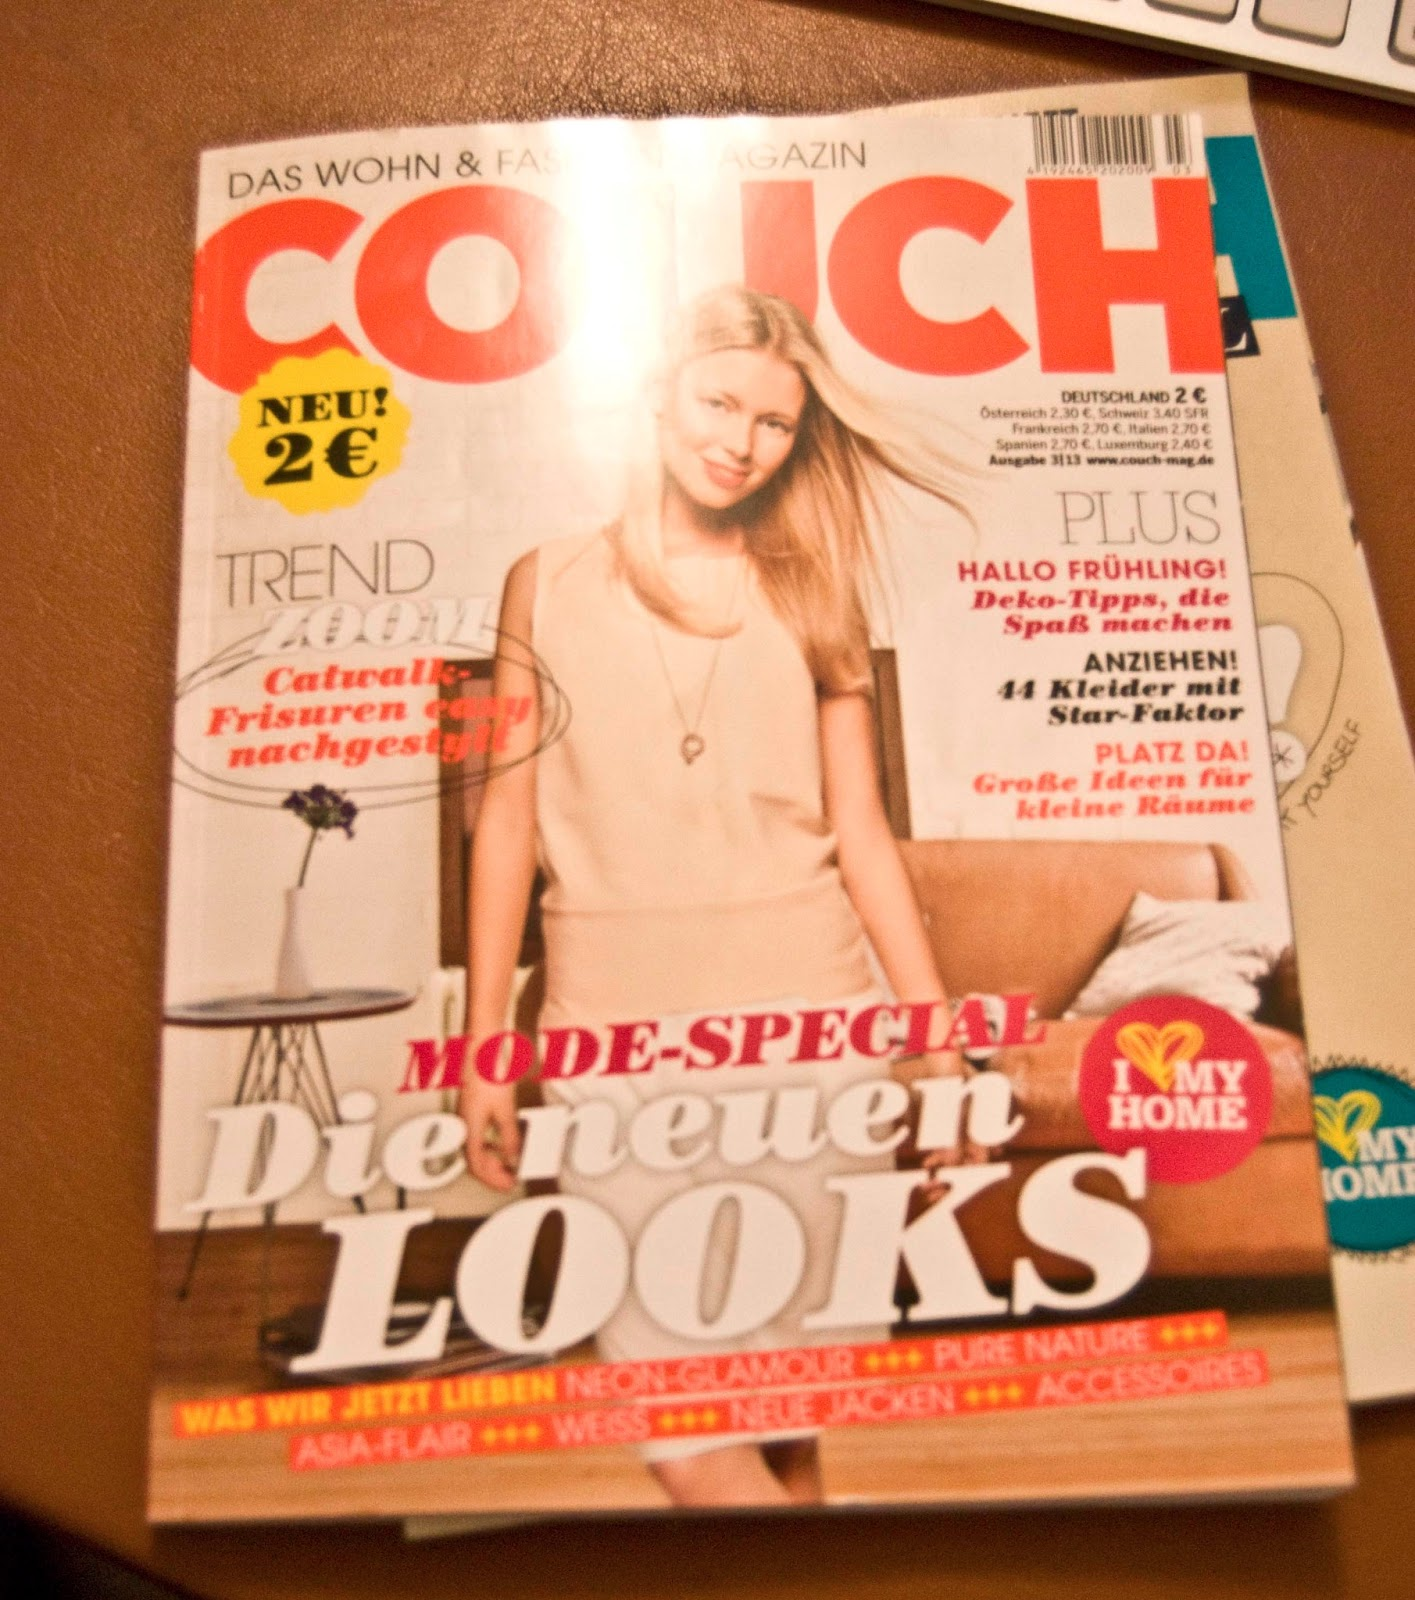 mein diy teppich in der couch my rug in couch mag. Black Bedroom Furniture Sets. Home Design Ideas